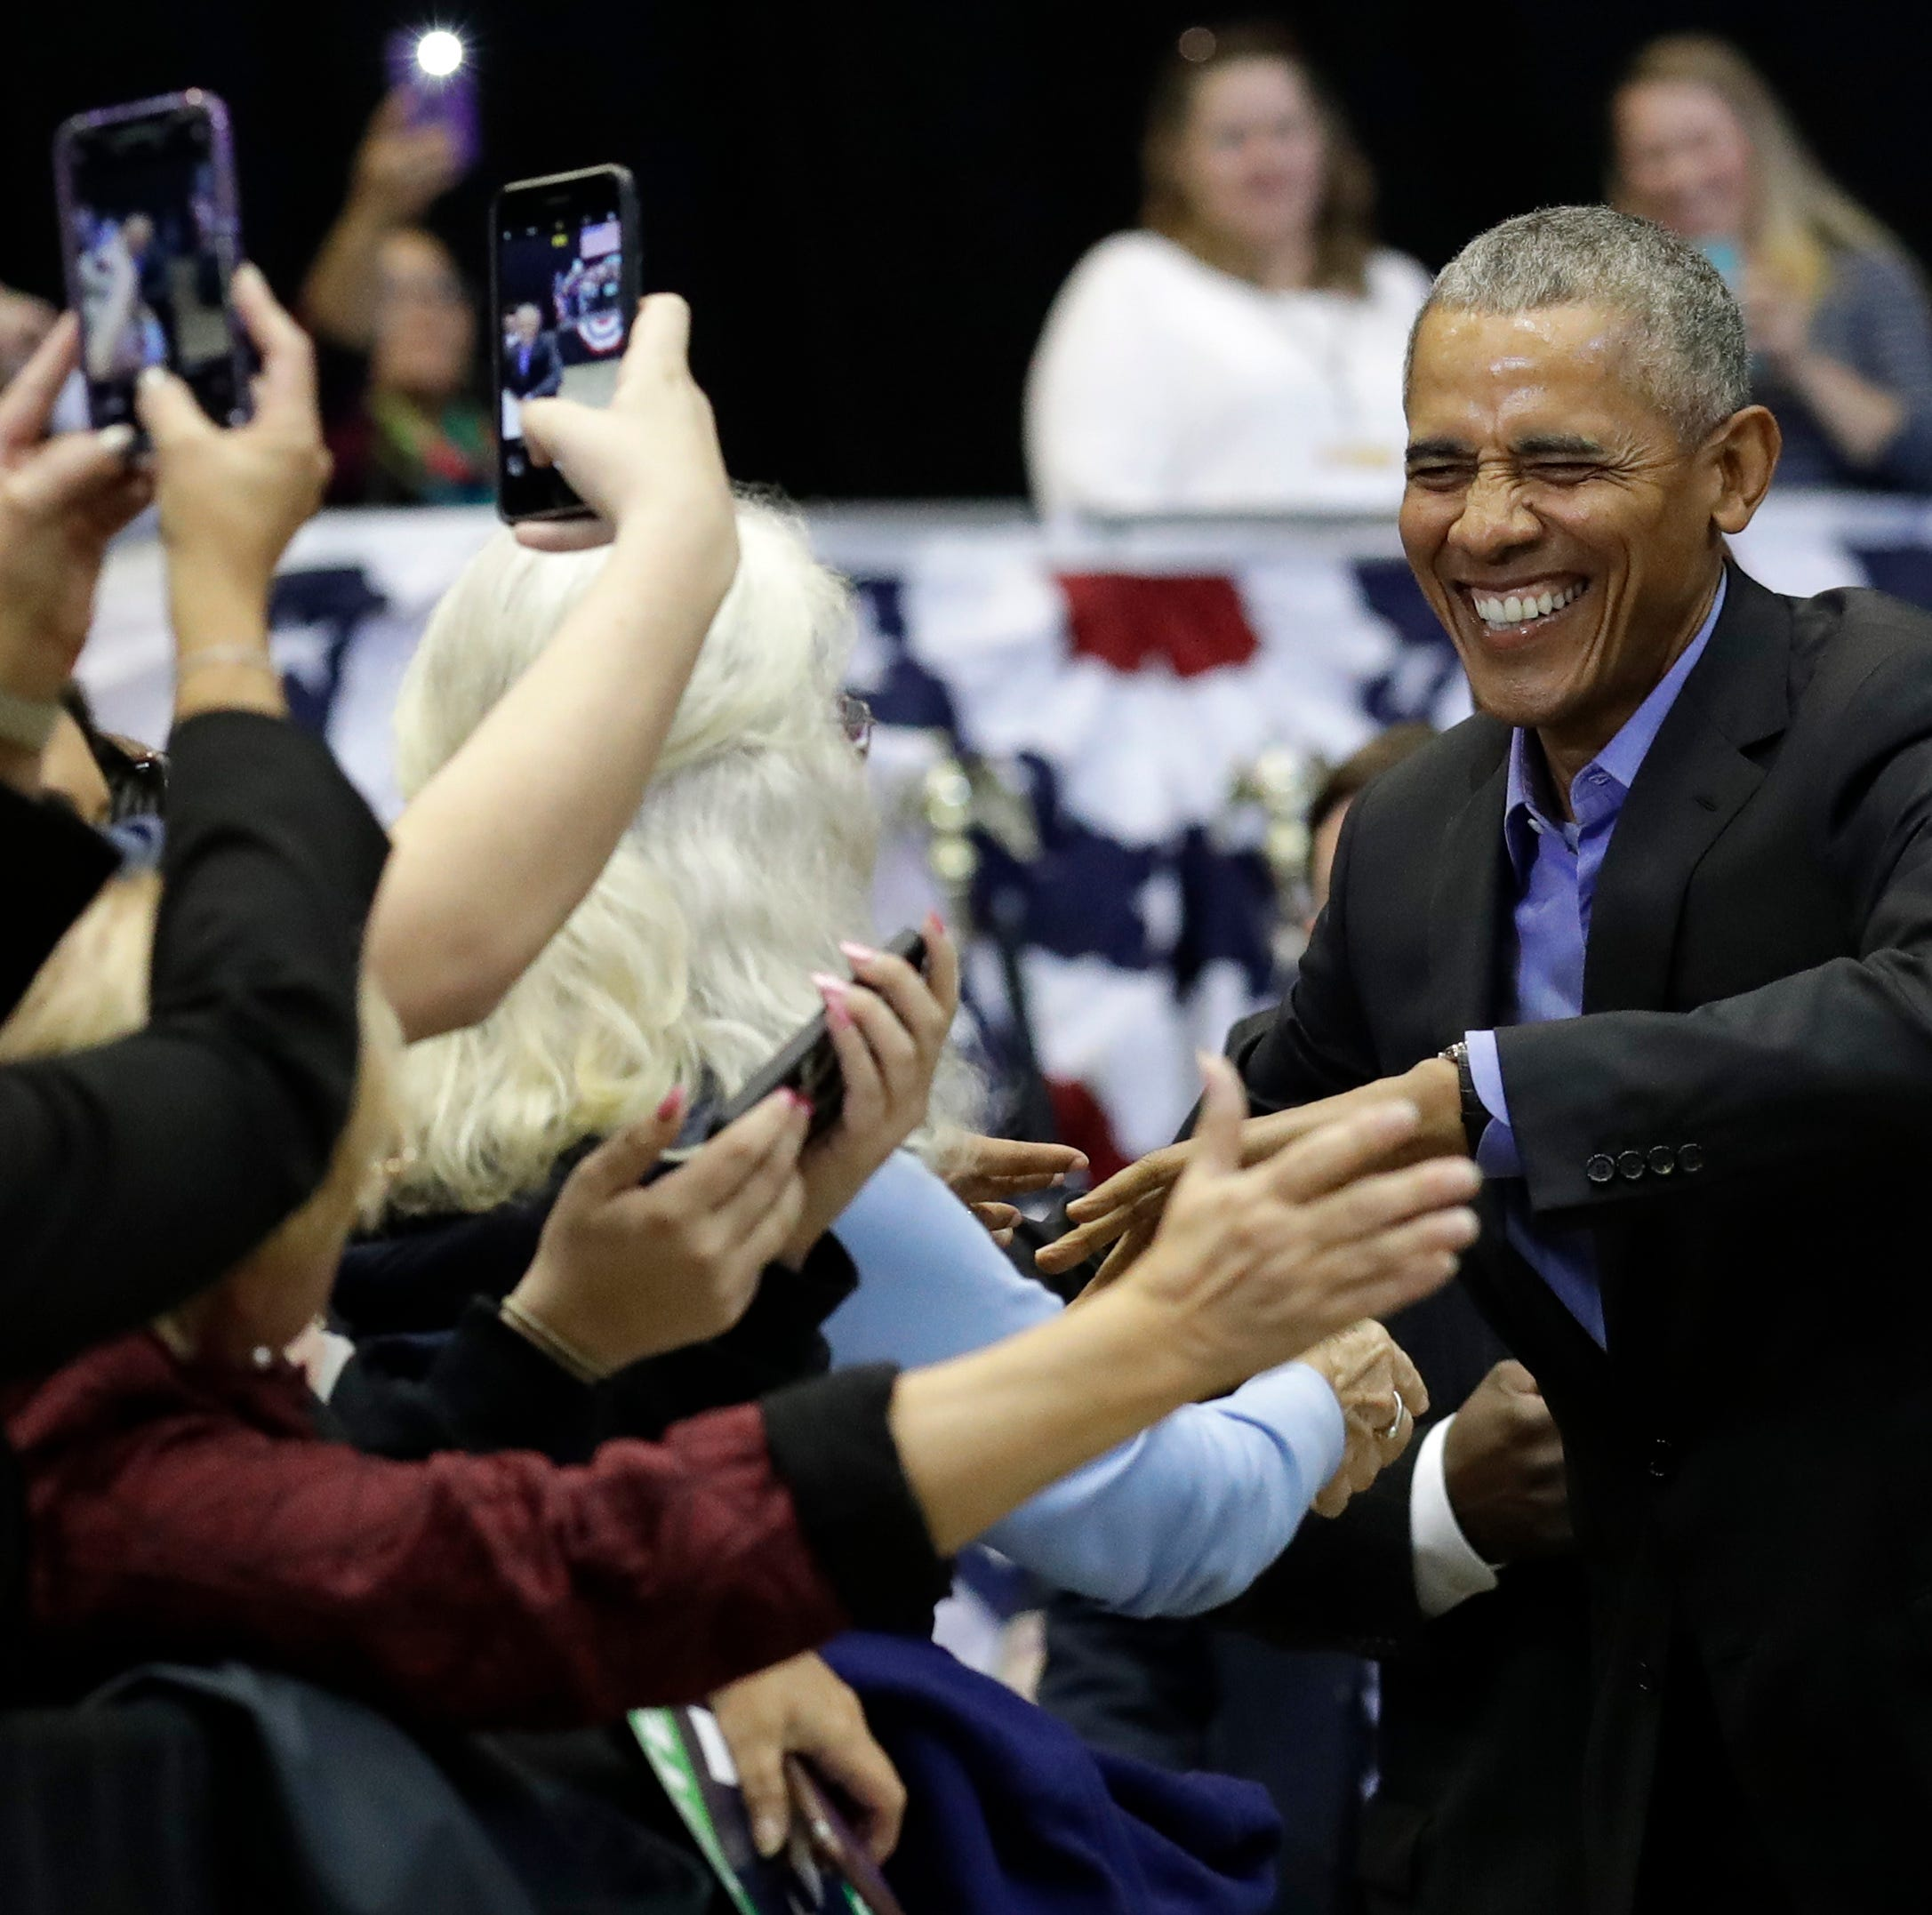 In Gary, Barack Obama campaigns for Joe Donnelly and offers 'antidote' to Donald Trump